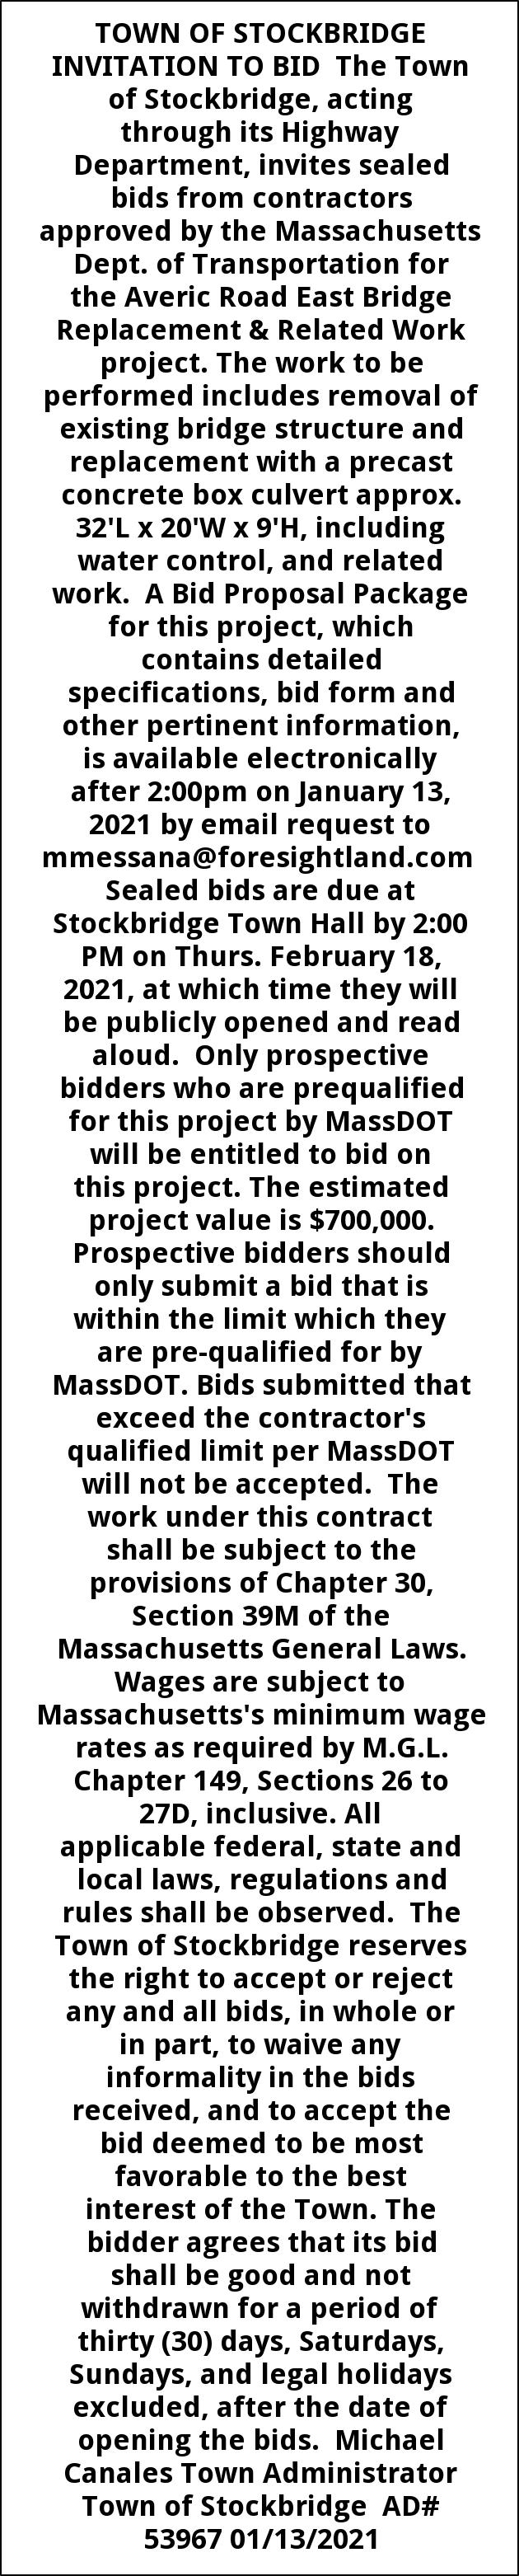 Sealed Bids From Contractors